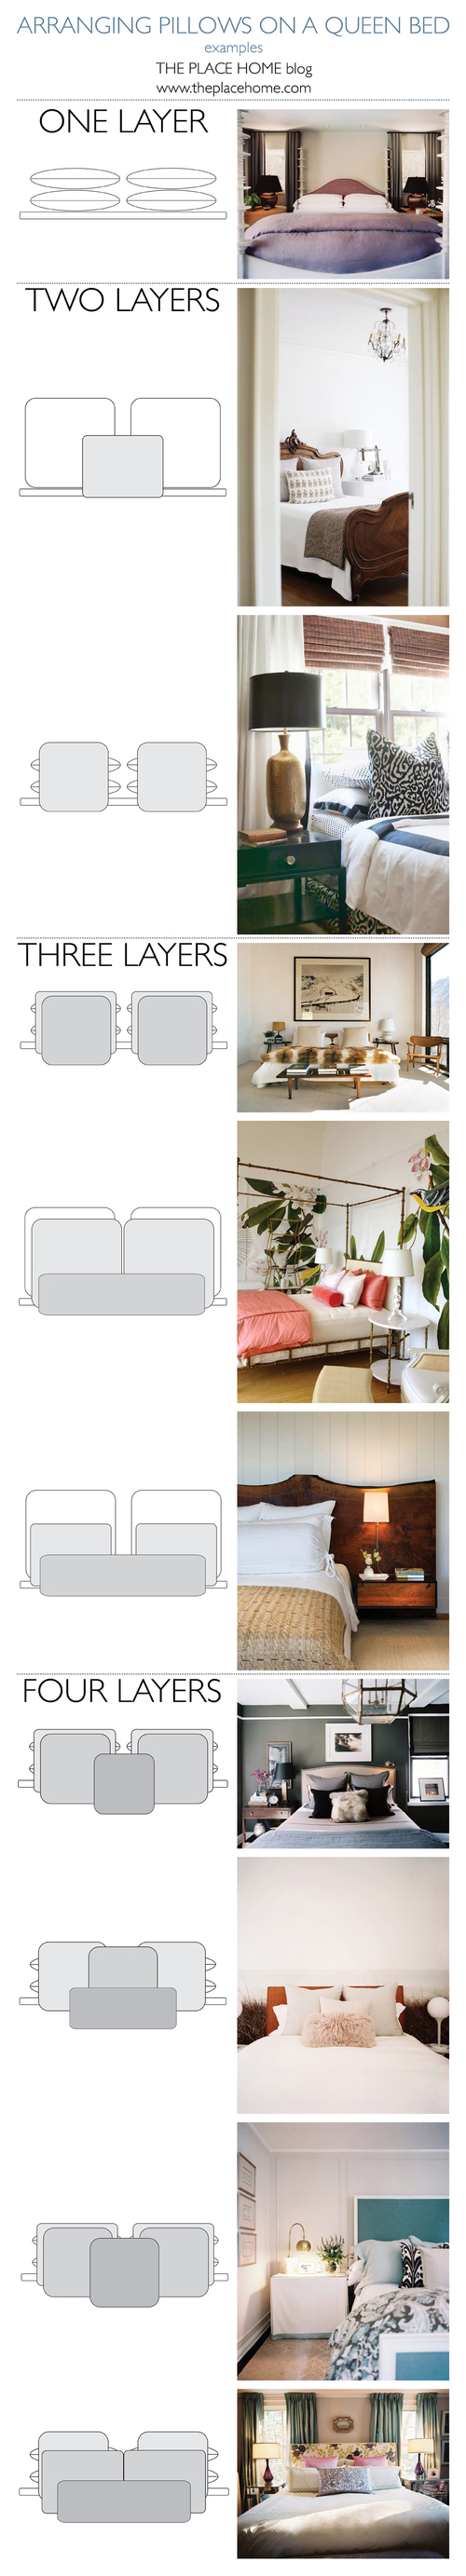 bed pillows (examples) Apartment bedroom design